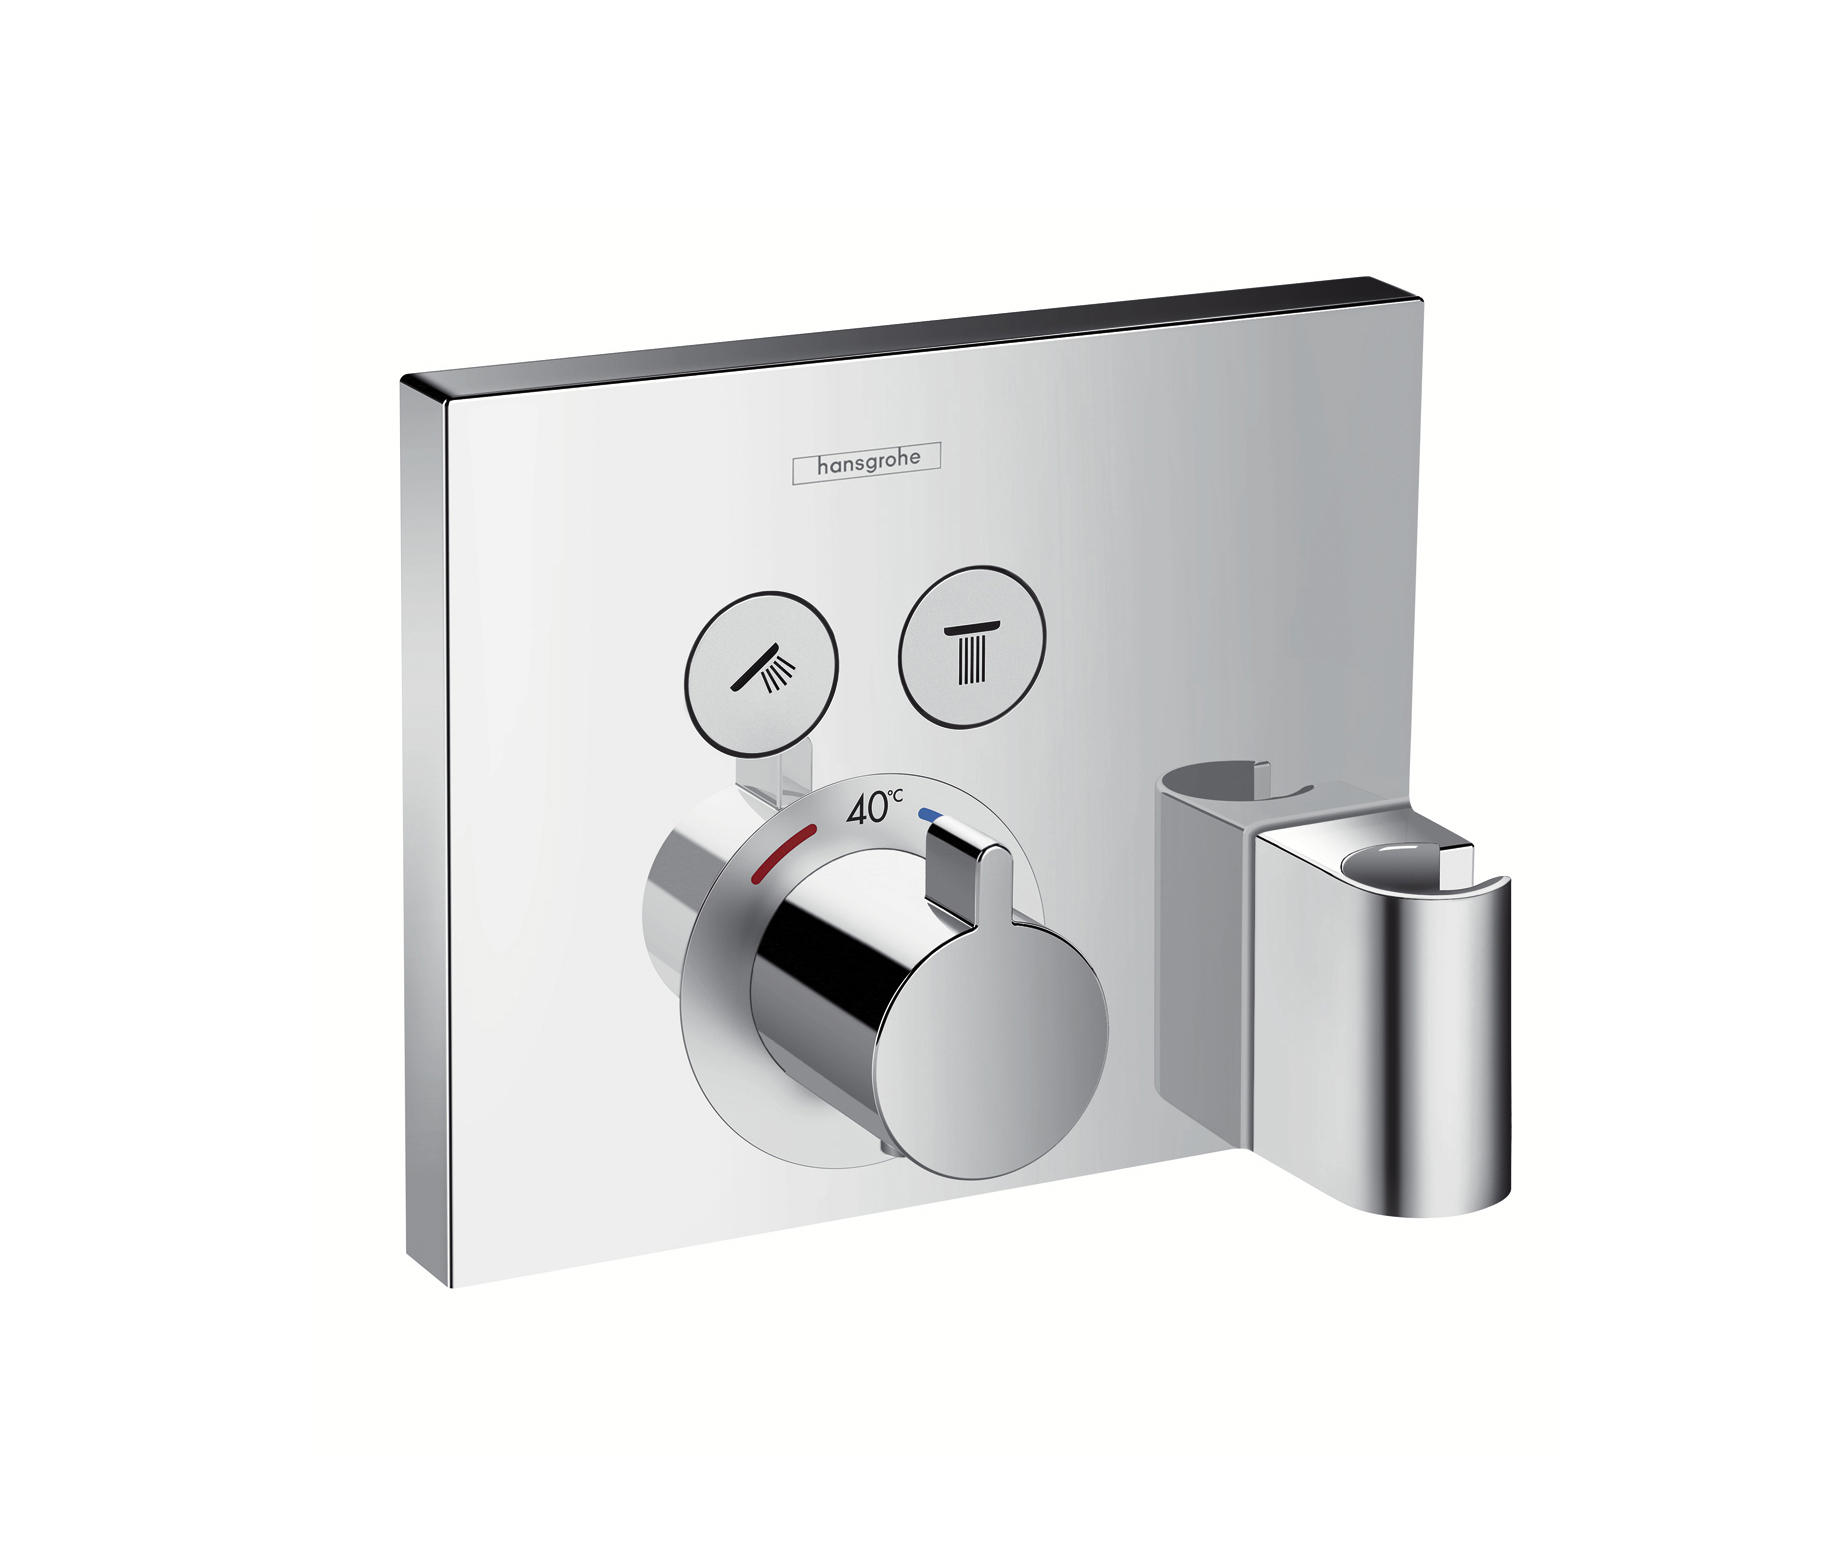 Hans Grohe Hansgrohe Hg Ecostat Select Thermostat Up Fertigset 2 Av